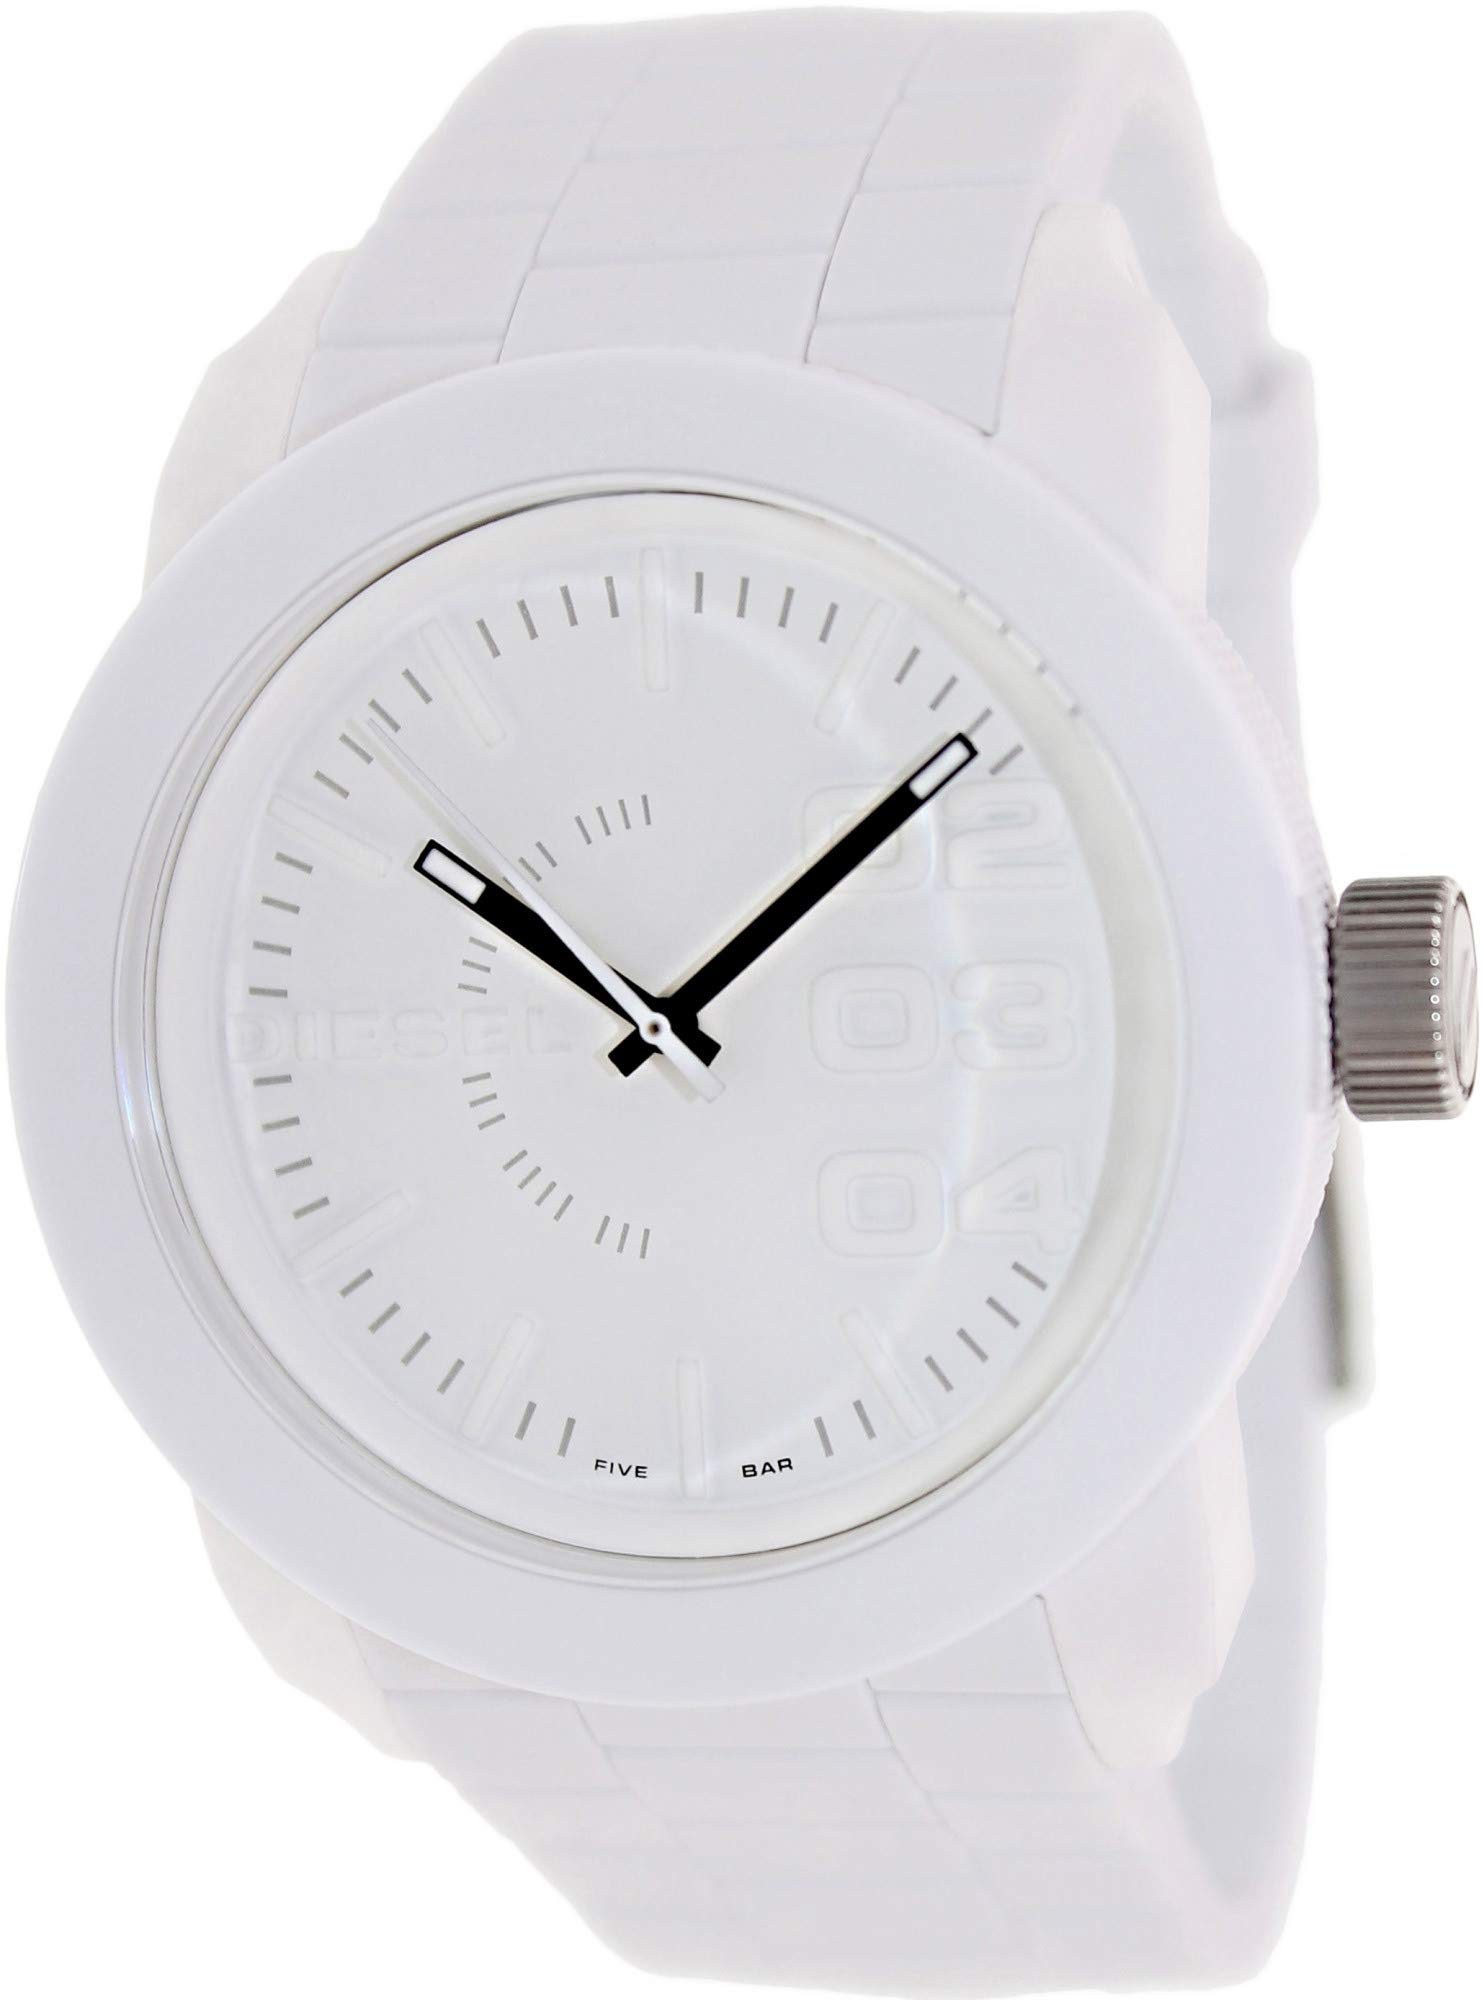 Diesel Men's Double Down Quartz Stainless Steel and Silicone Casual Watch, Color: White (Model: DZ1436) by Diesel